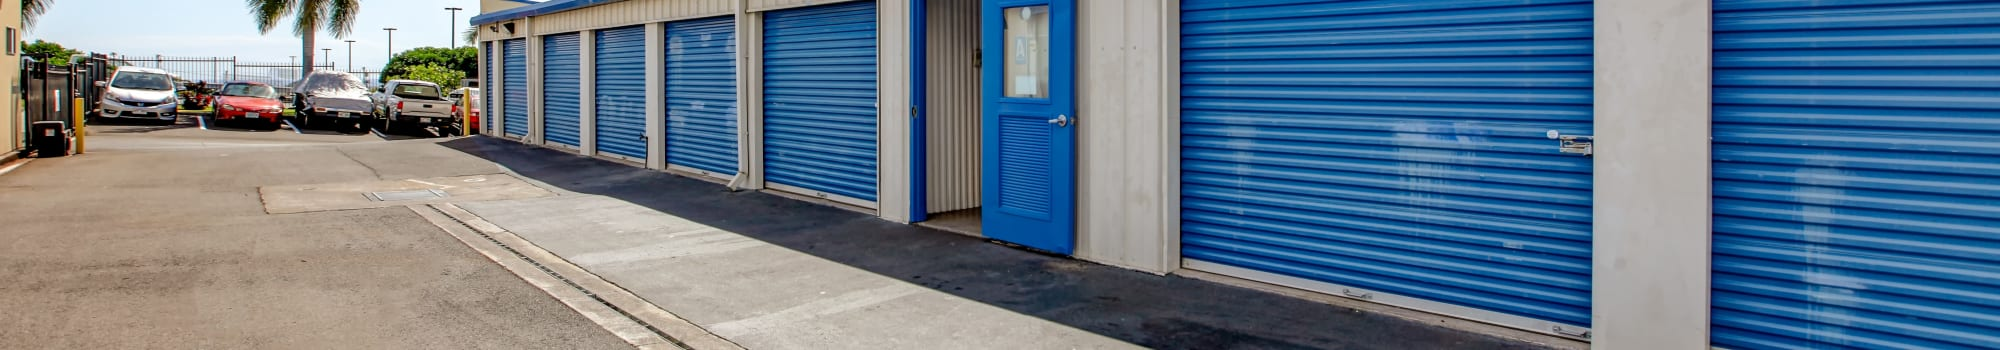 My Self Storage Space storage units for rent in Kailua-Kona, Hawaii